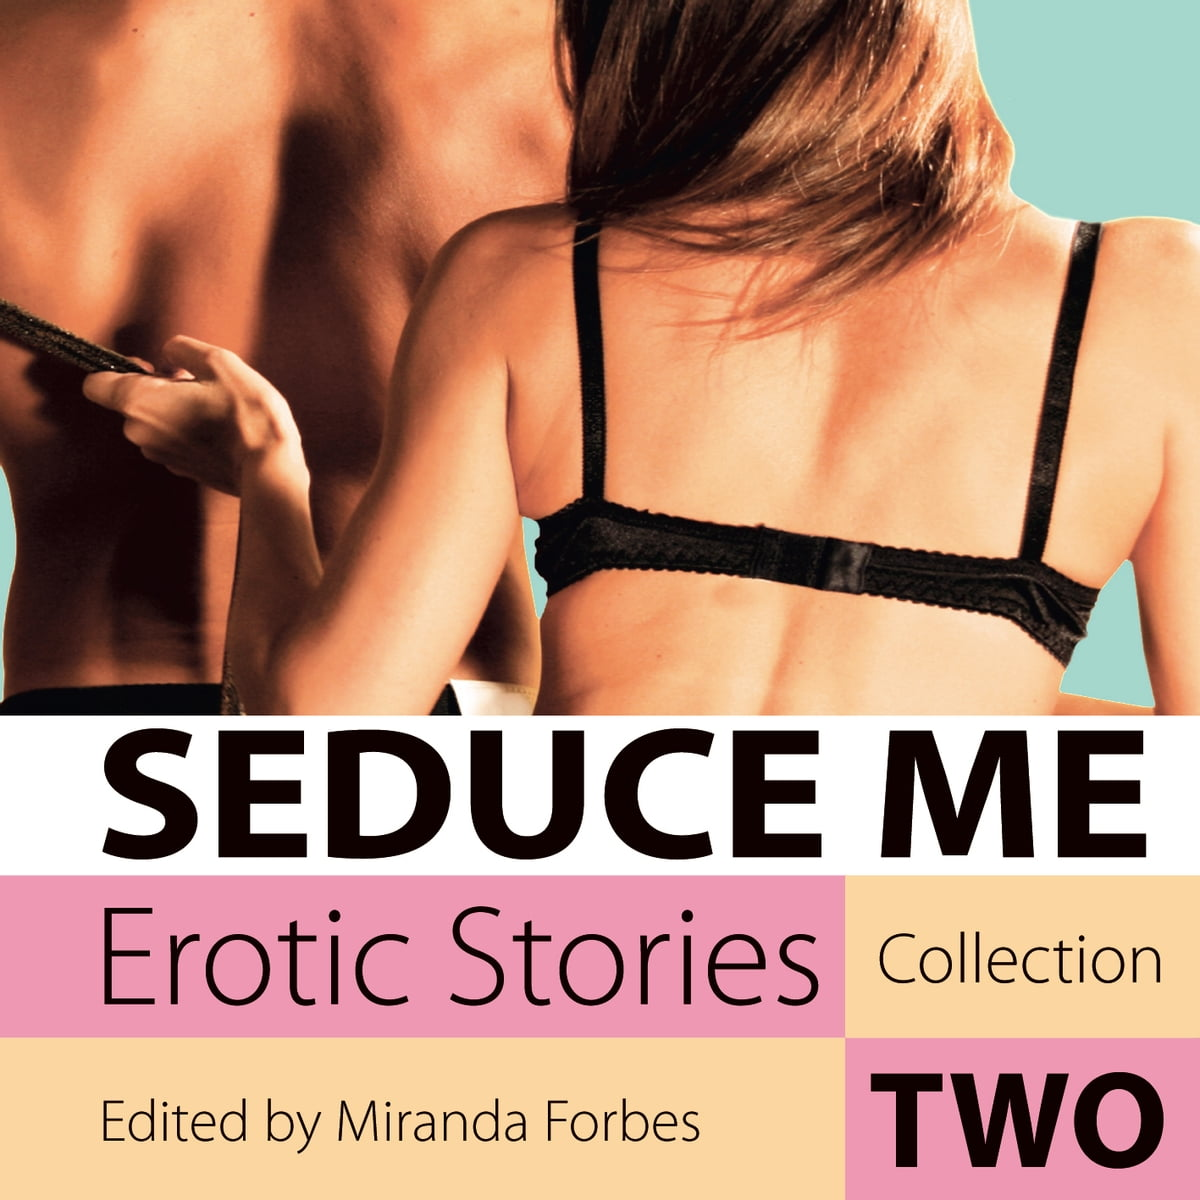 Sexting Short Love And Erotic Stories Ready To Text Sample